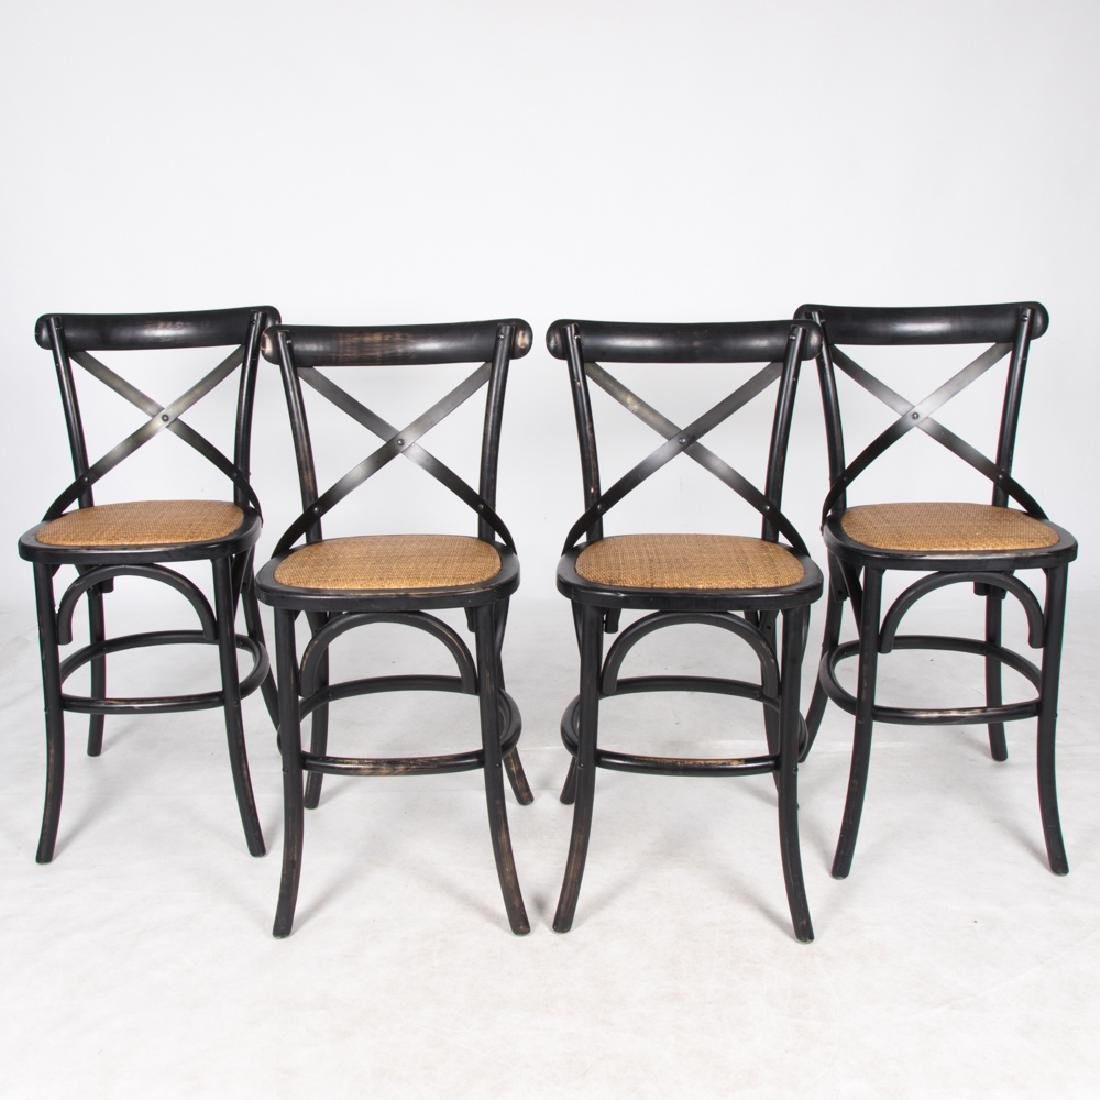 A Group of Four Thonet Style Painted Bentwood and Metal